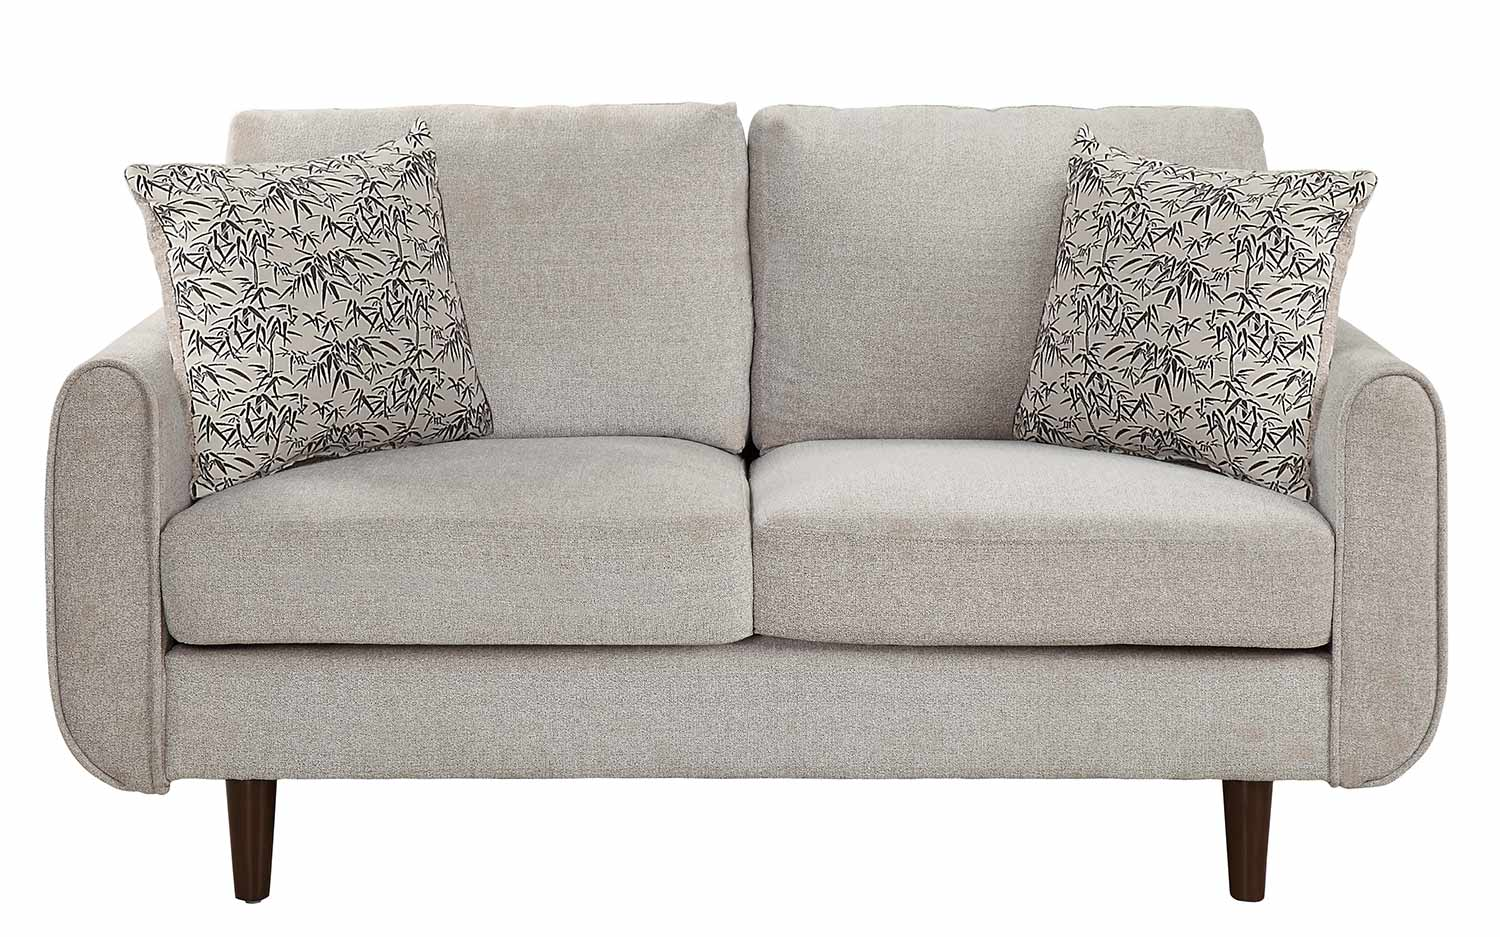 Homelegance Wrasse Love Seat - Sand Fabric